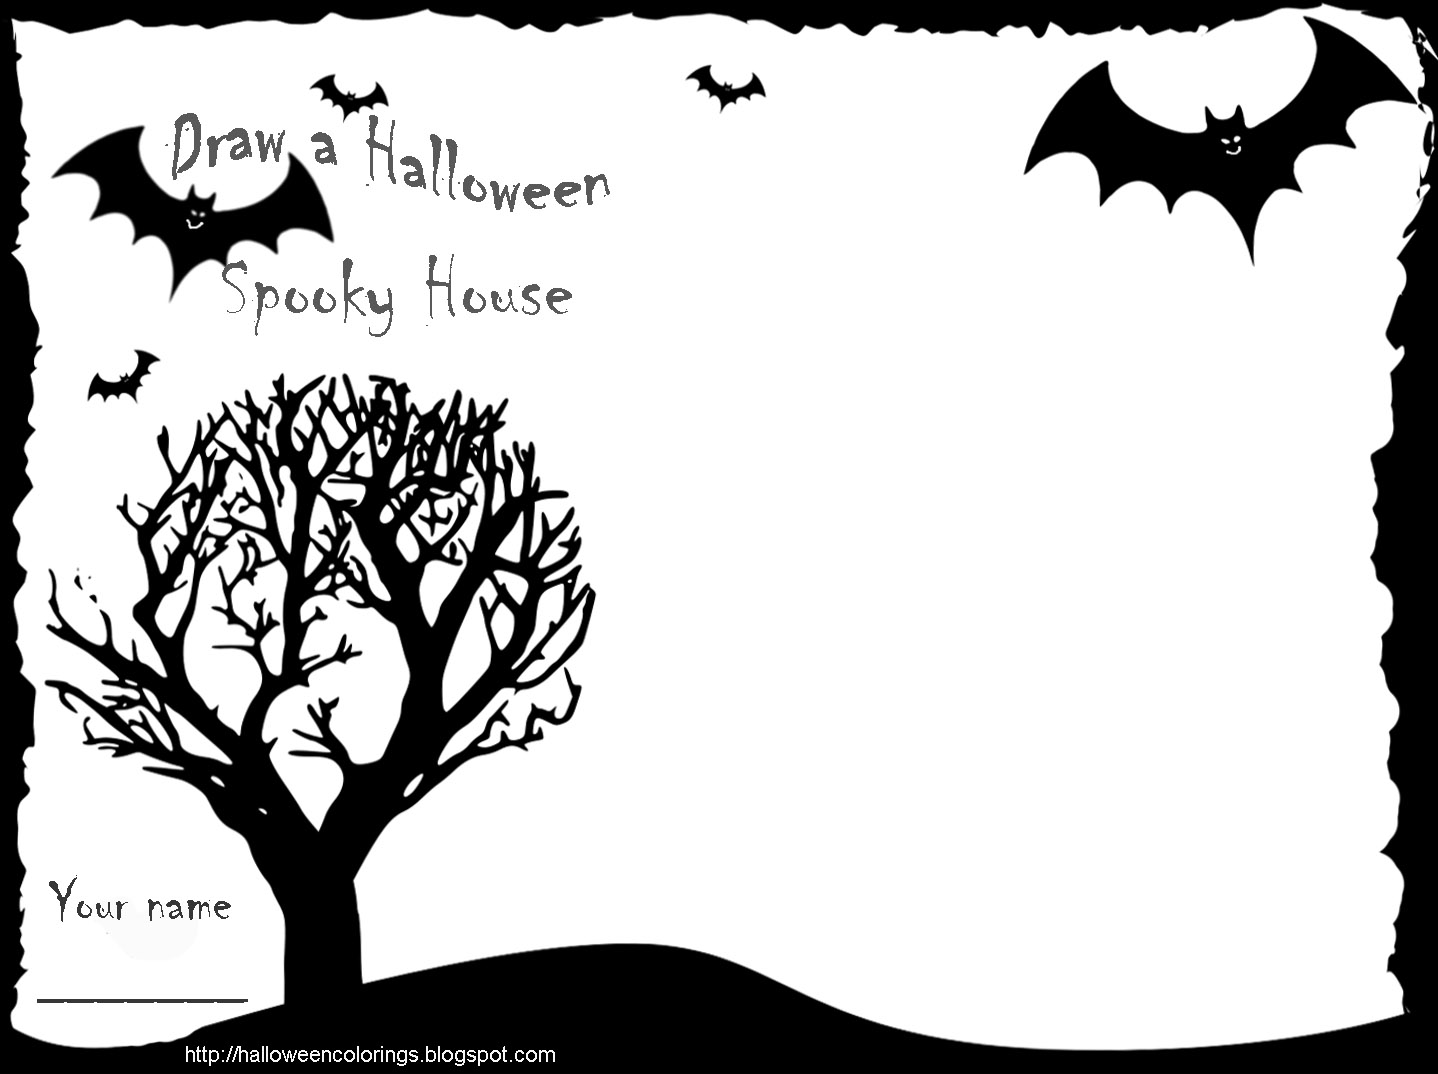 halloween worksheets coloring pages | HALLOWEEN COLORINGS